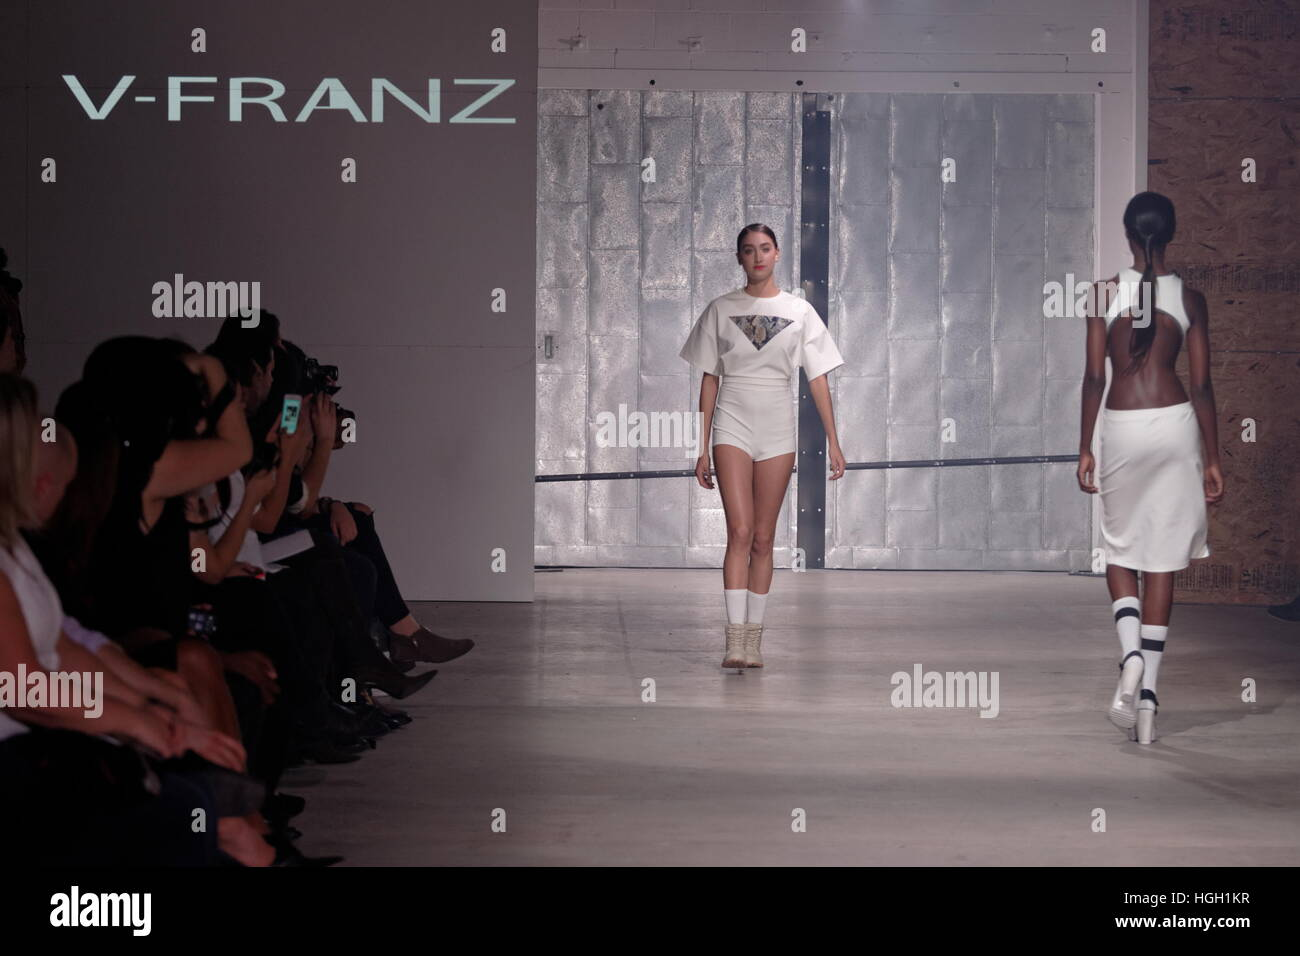 Models on the runway for the V-Franz Spring/Summer 2015 fashion show held at the Fullum studios in Montreal. - Stock Image